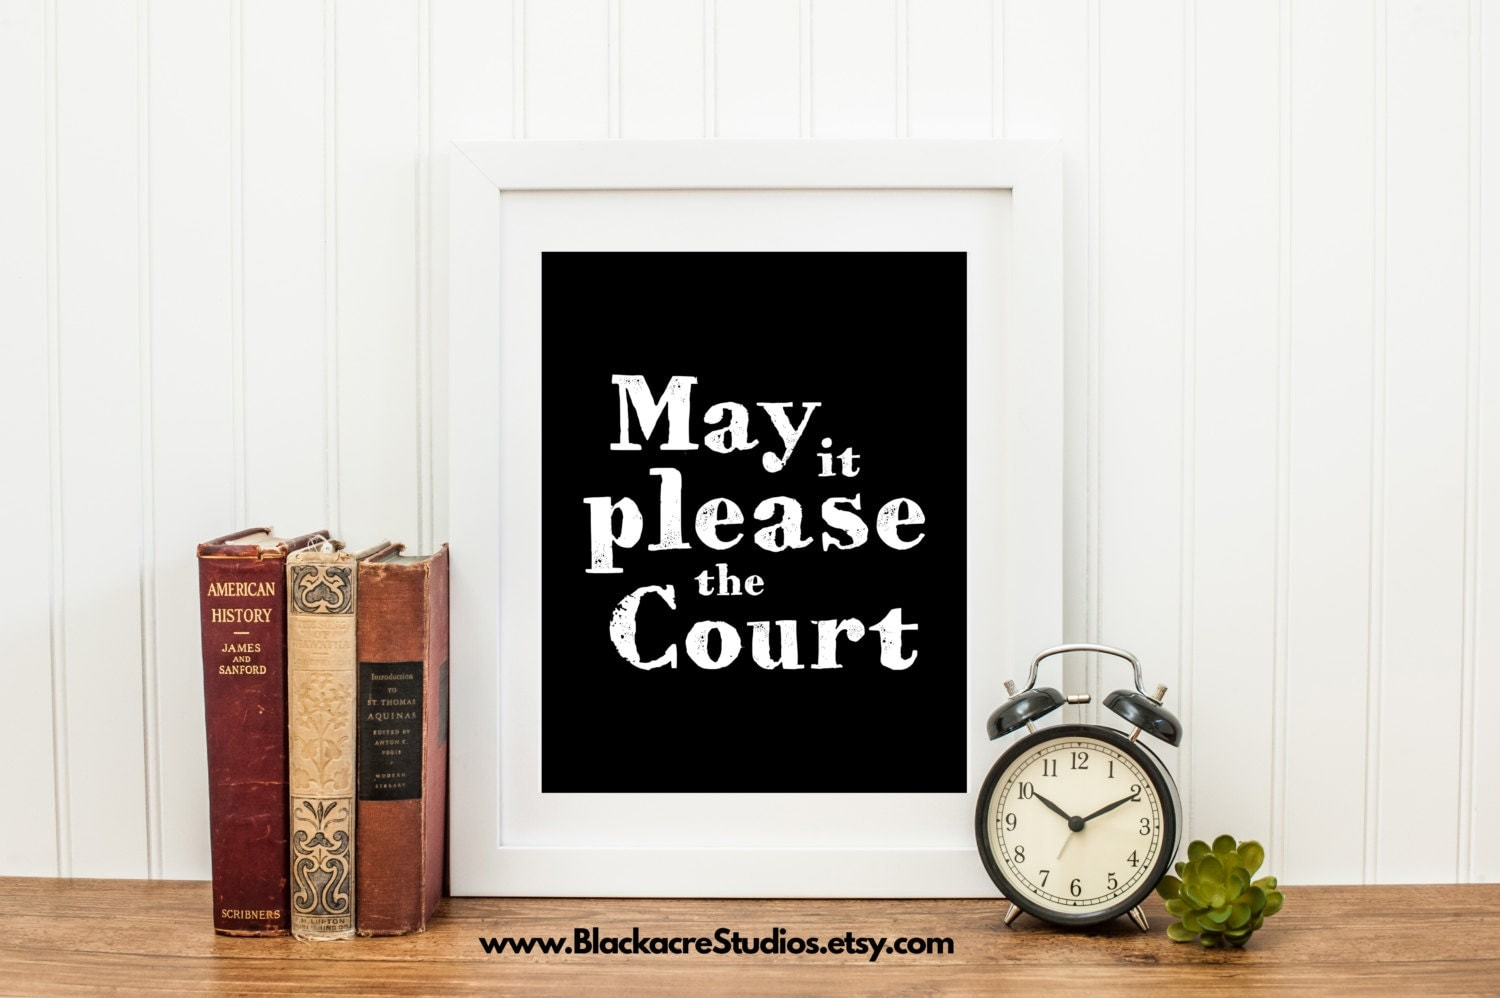 gift lawyer gifts court please trial lawyers attorney law prosecutor office print legal defense miranda warning pack decor etsy